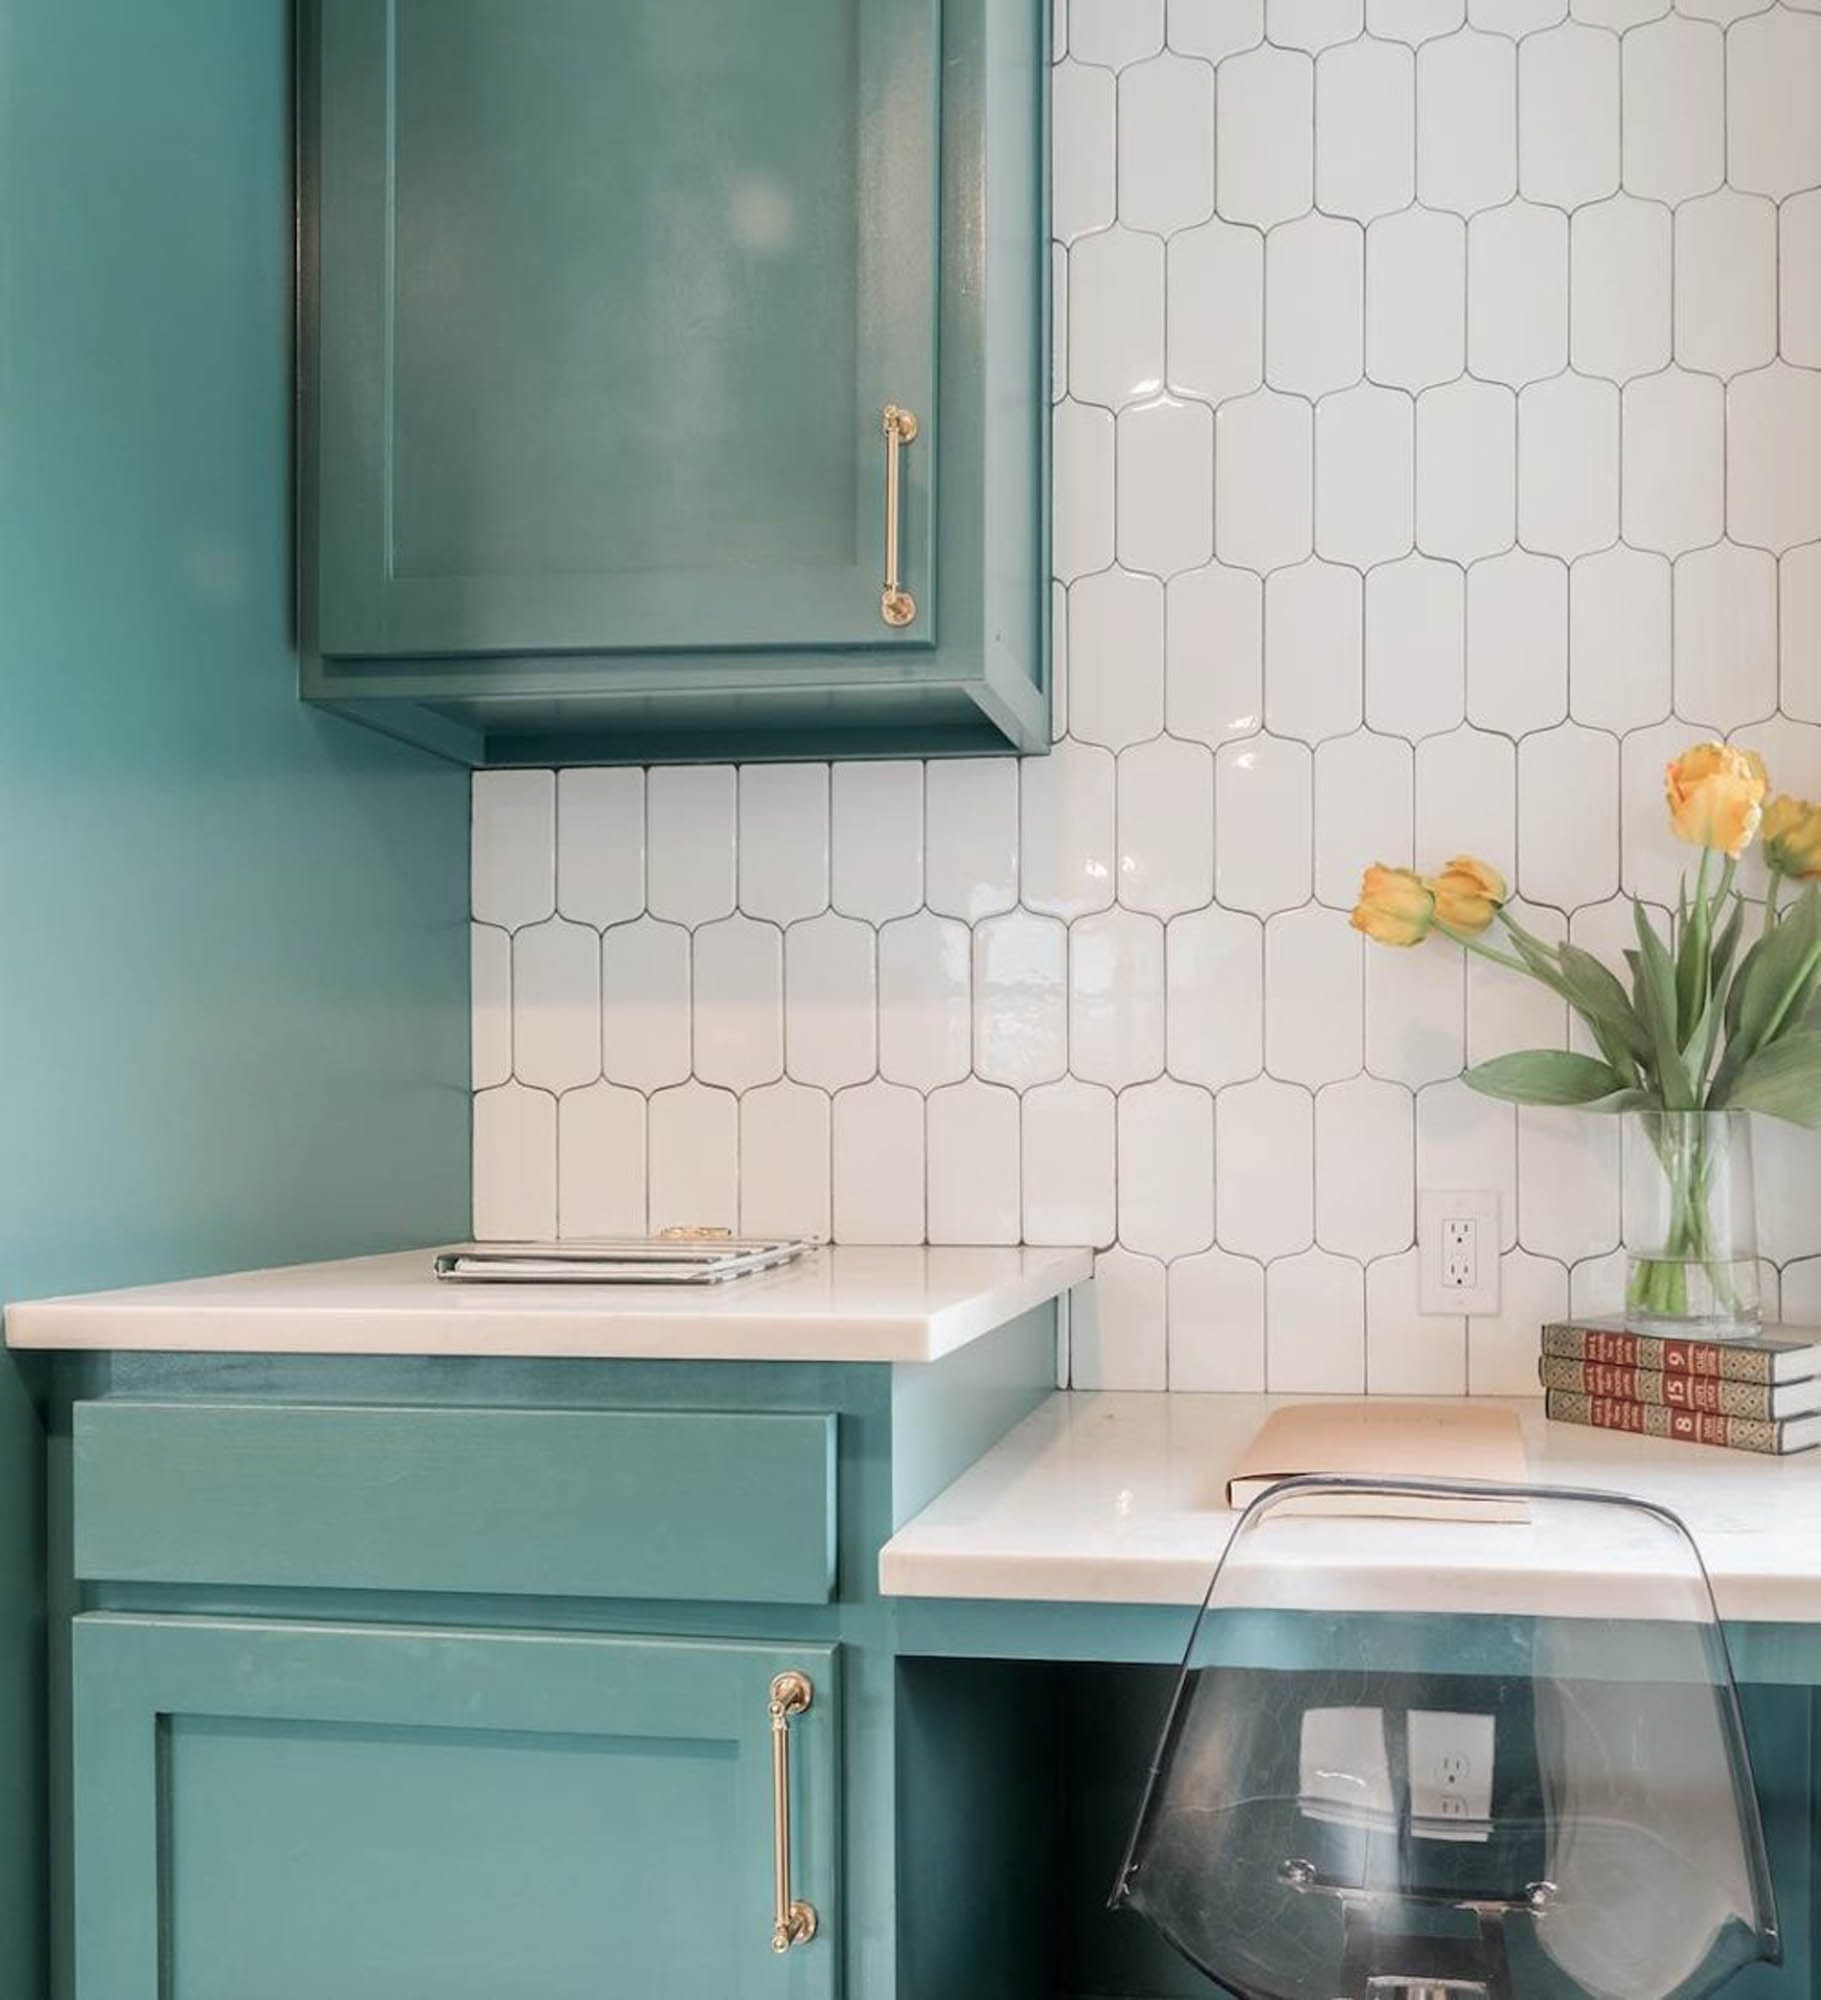 Turquoise cabinets and white backsplash tile